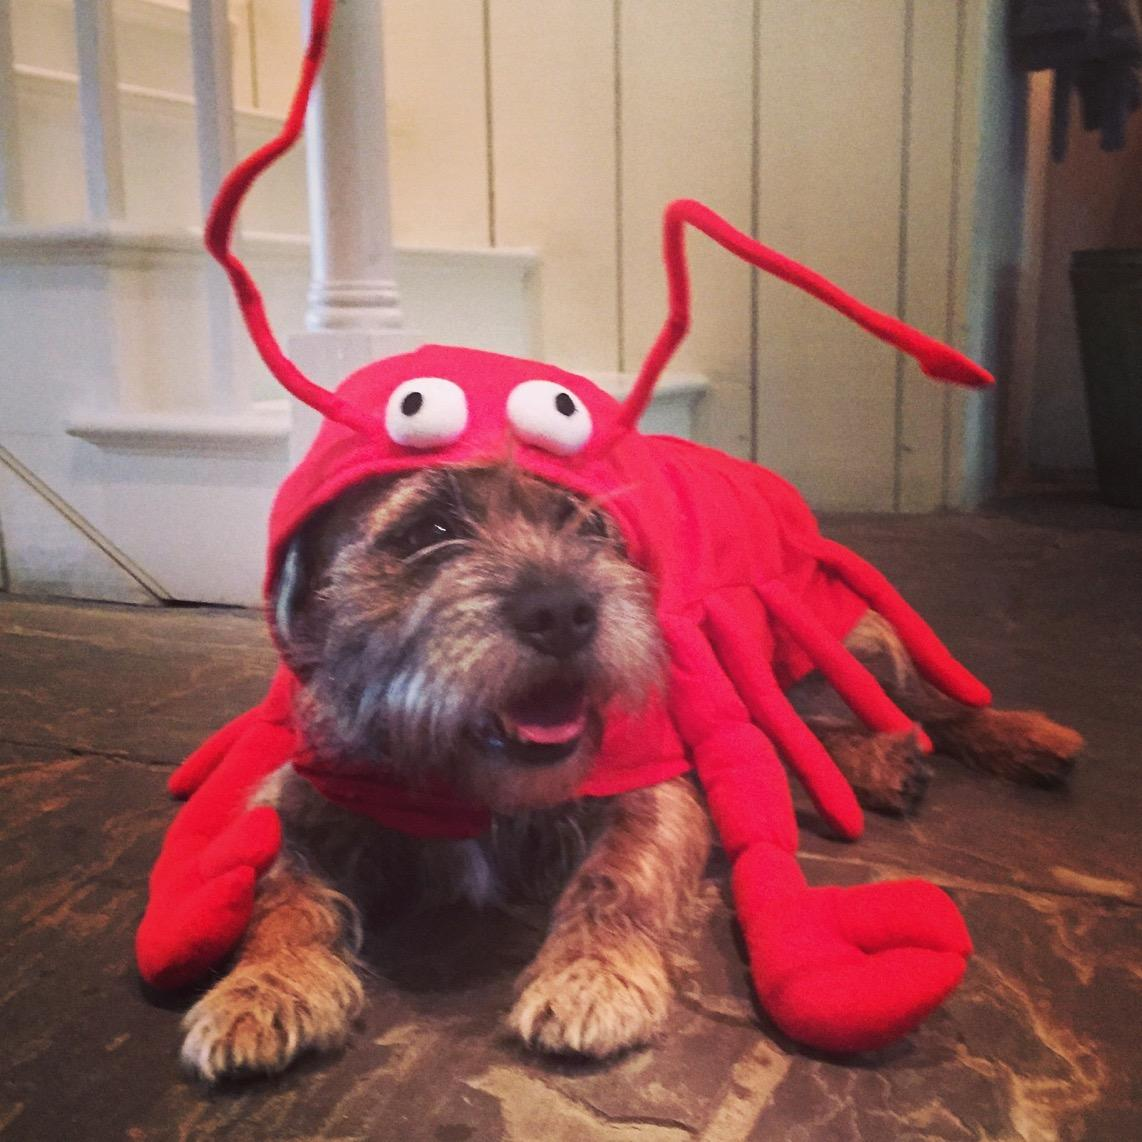 Happy Halloween from Bert. (He is dressed as a lobster by the way). http://t.co/89GQ6dj9gT